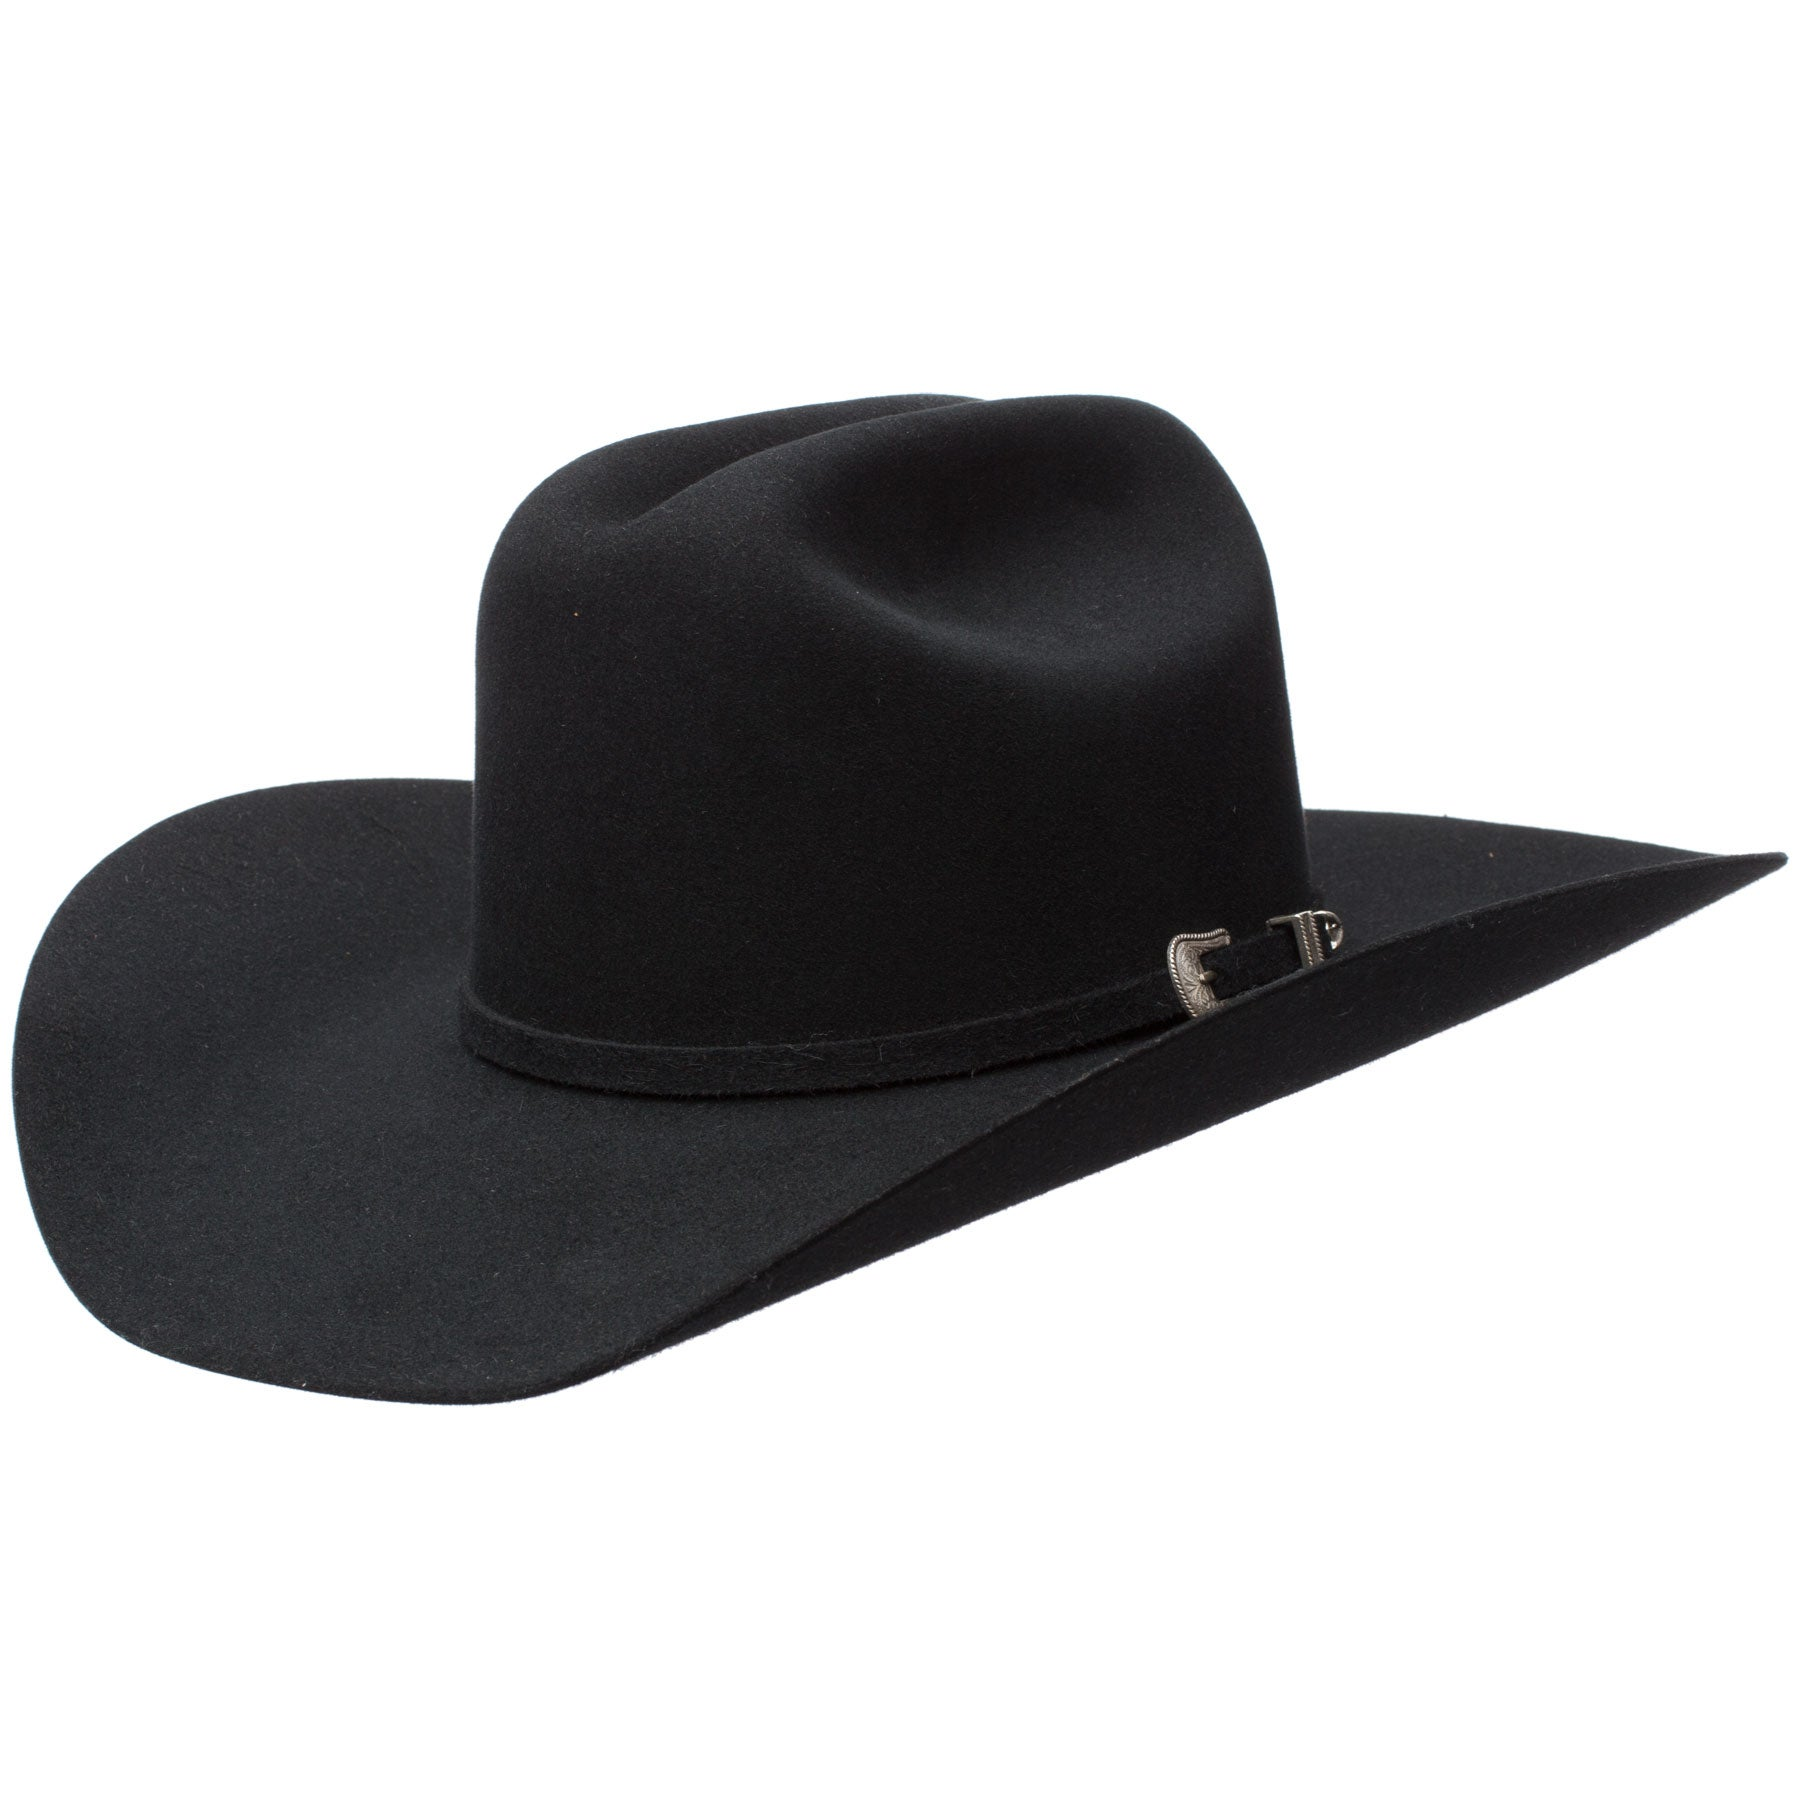 6d16c08e721 Resistol The Challenger 5X Fur Felt Cowboy Hat - Riding Warehouse